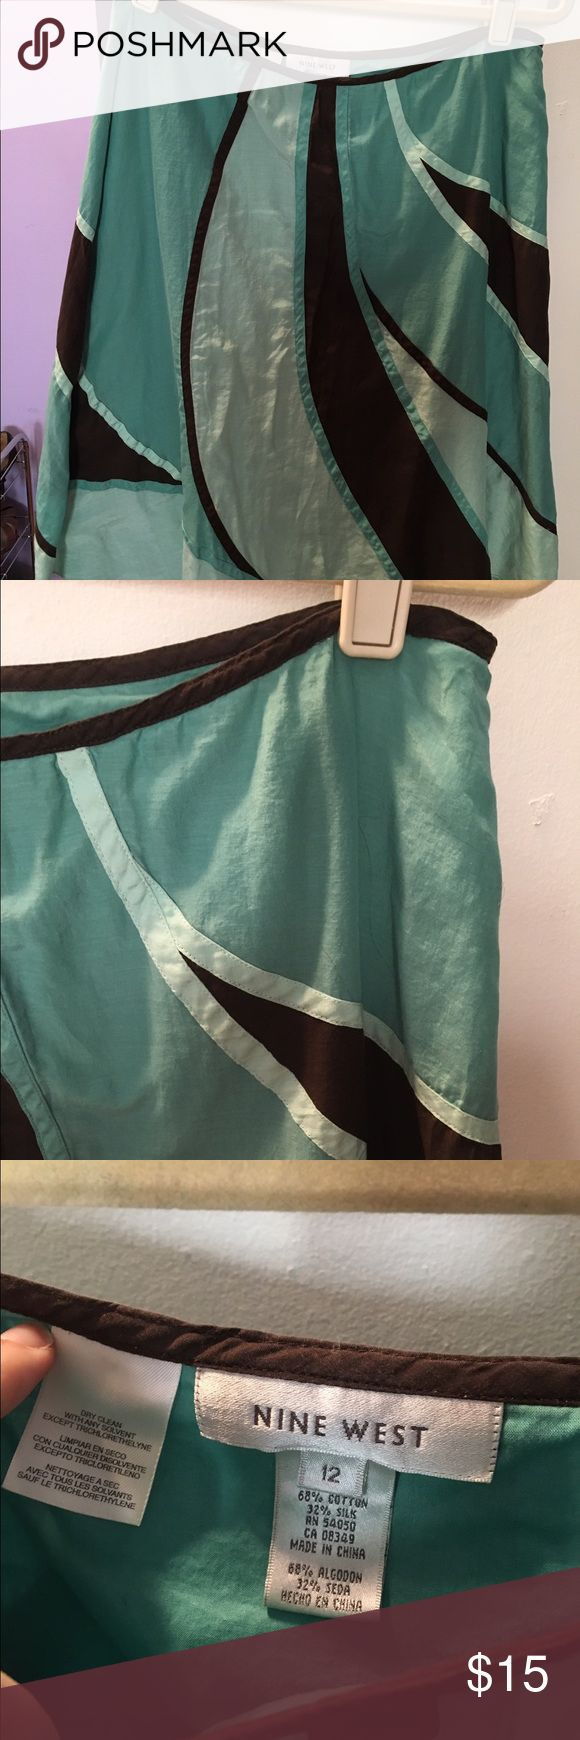 Nine West Teal and Brown Swirl Design Skirt This is a lovely linen, cotton blend skirt from Nine West. Different shades of Teal and brown. Great for showers or parties or work. I have a coordinating top, if desired. Nine West Skirts A-Line or Full